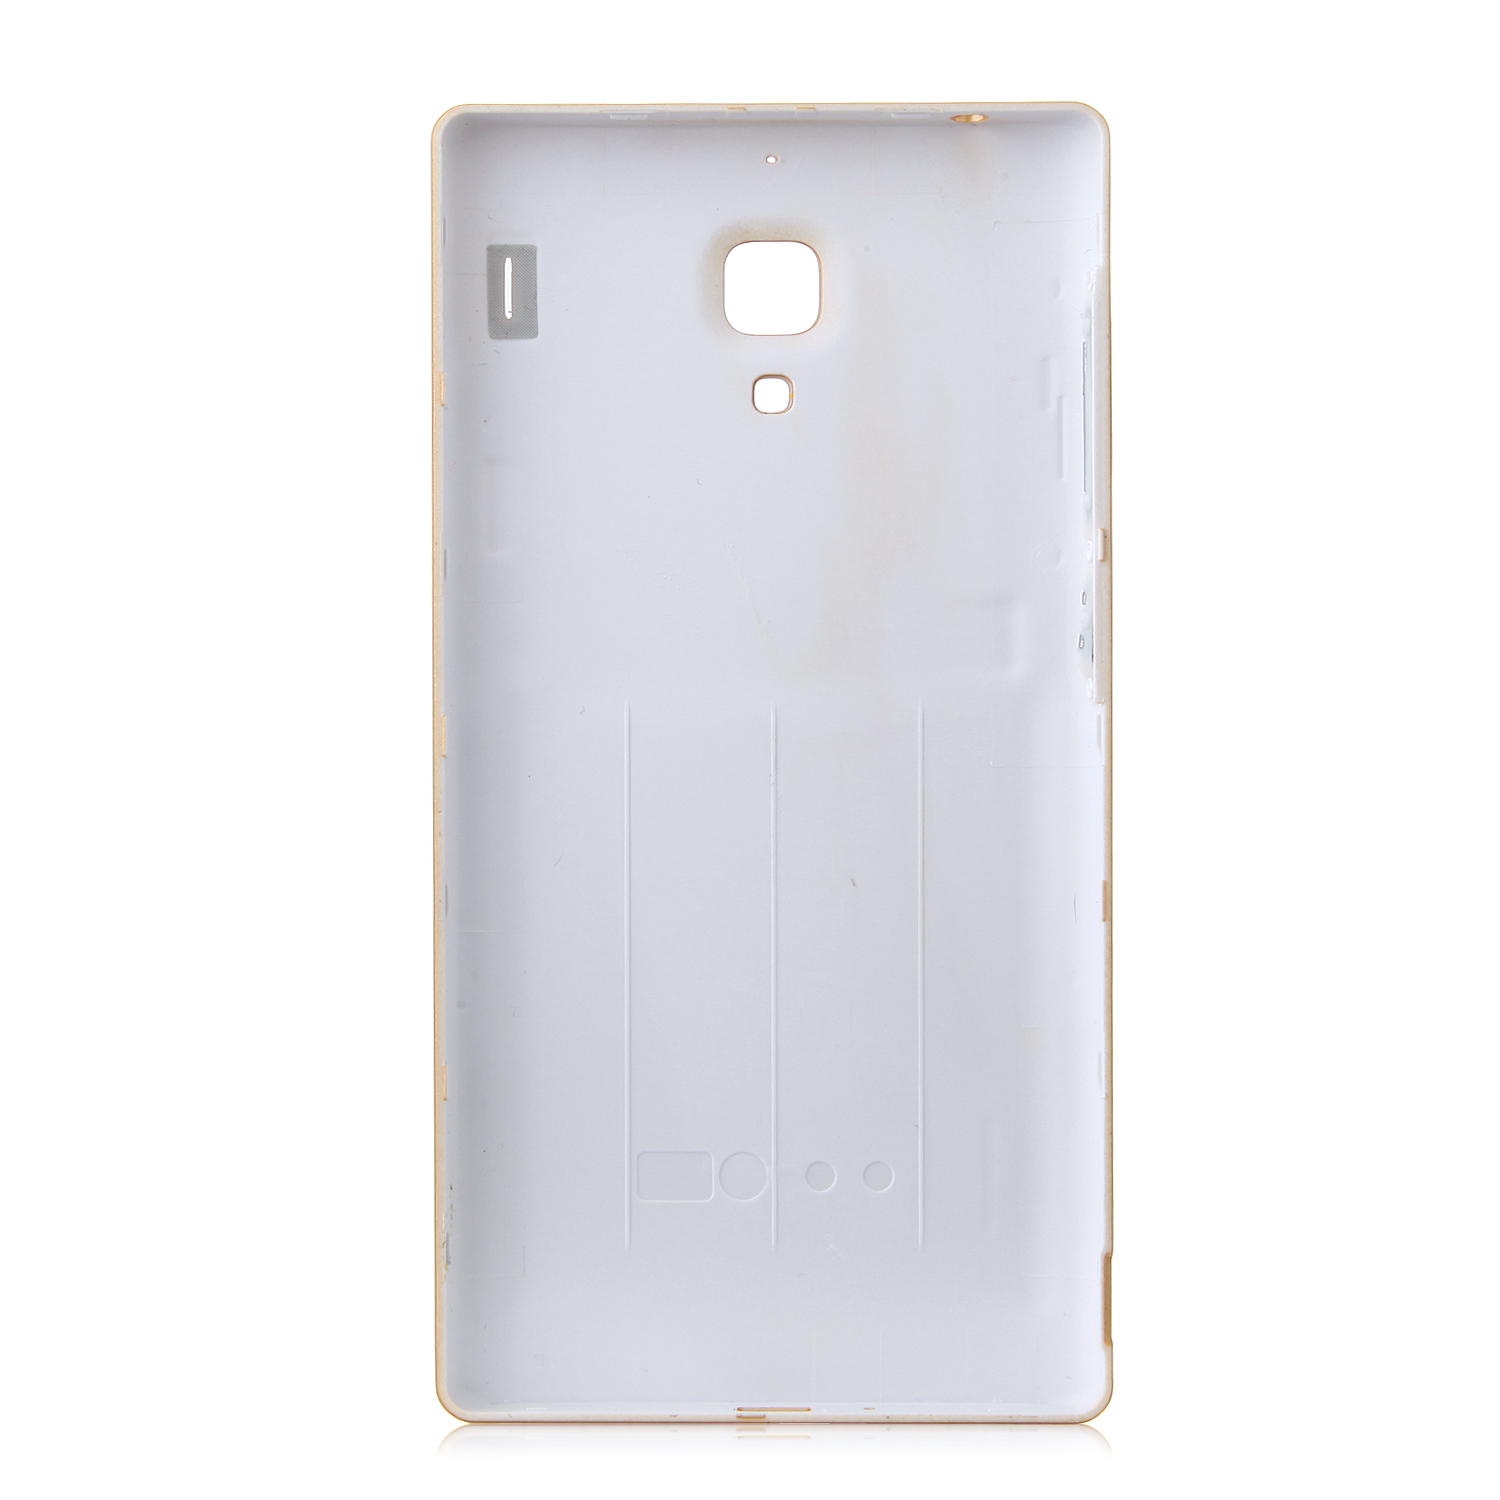 Replacement Battery Cover Back Case for XIAOMI 2A Smartphone Golden